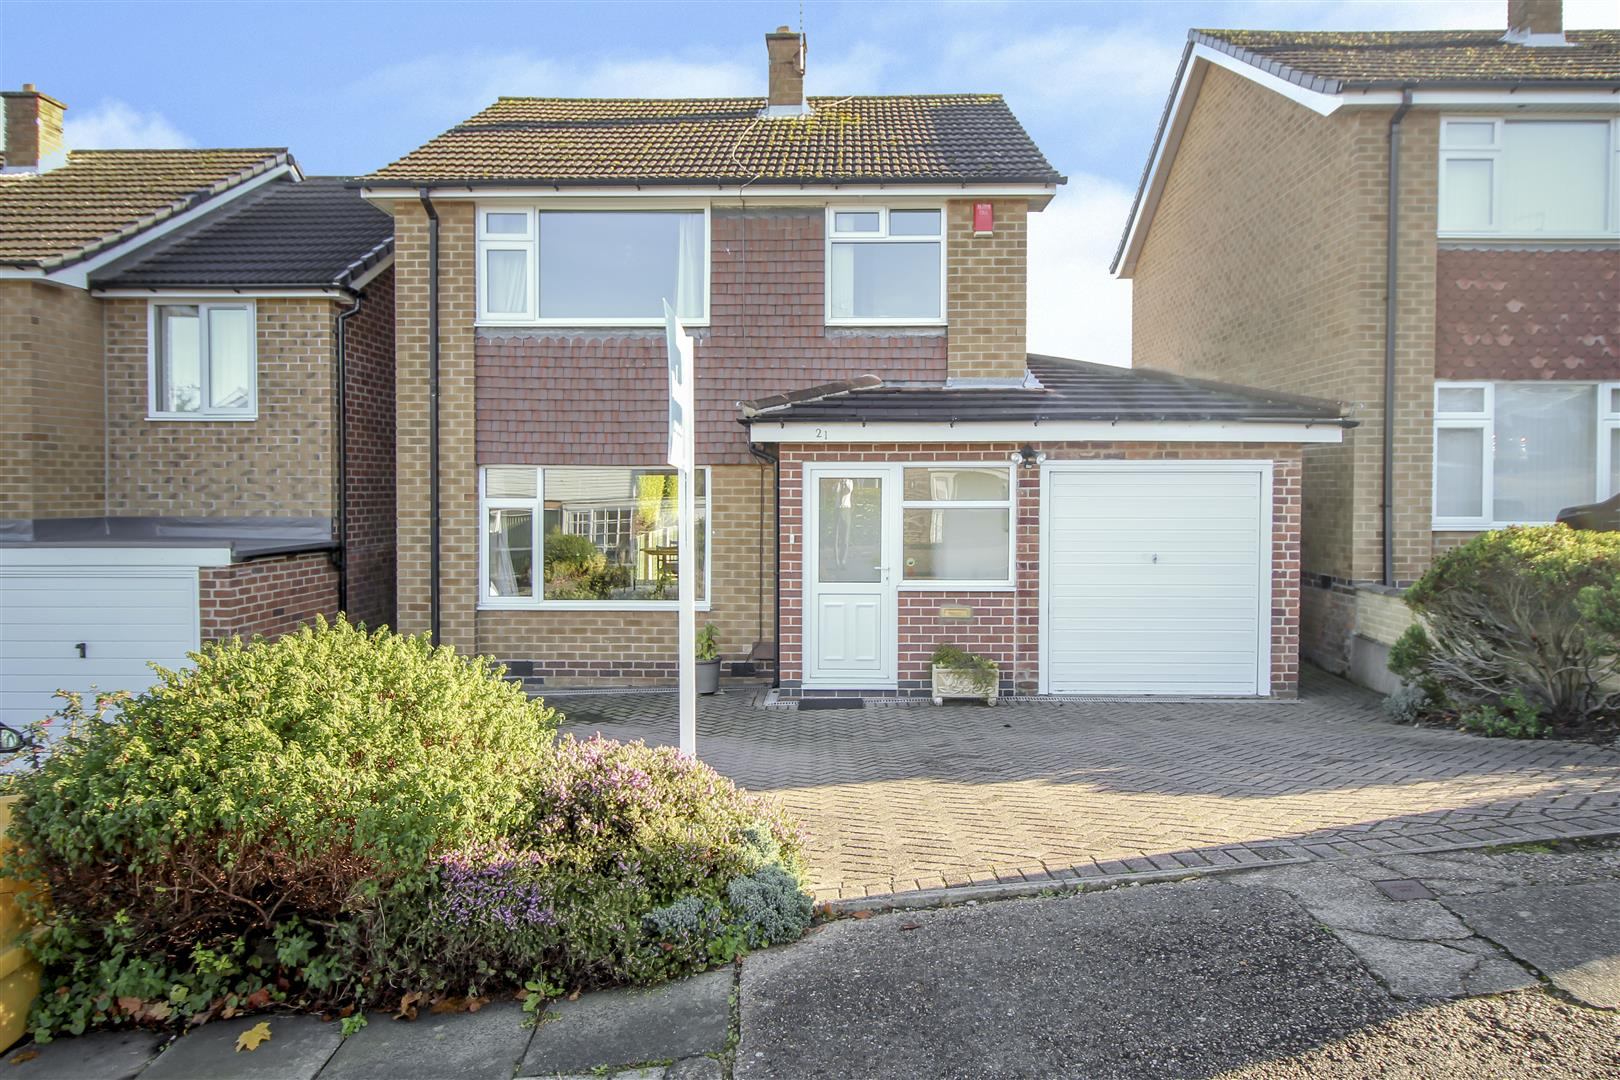 3 Bedrooms Detached House for sale in Buttermere Drive, Bramcote, Nottingham